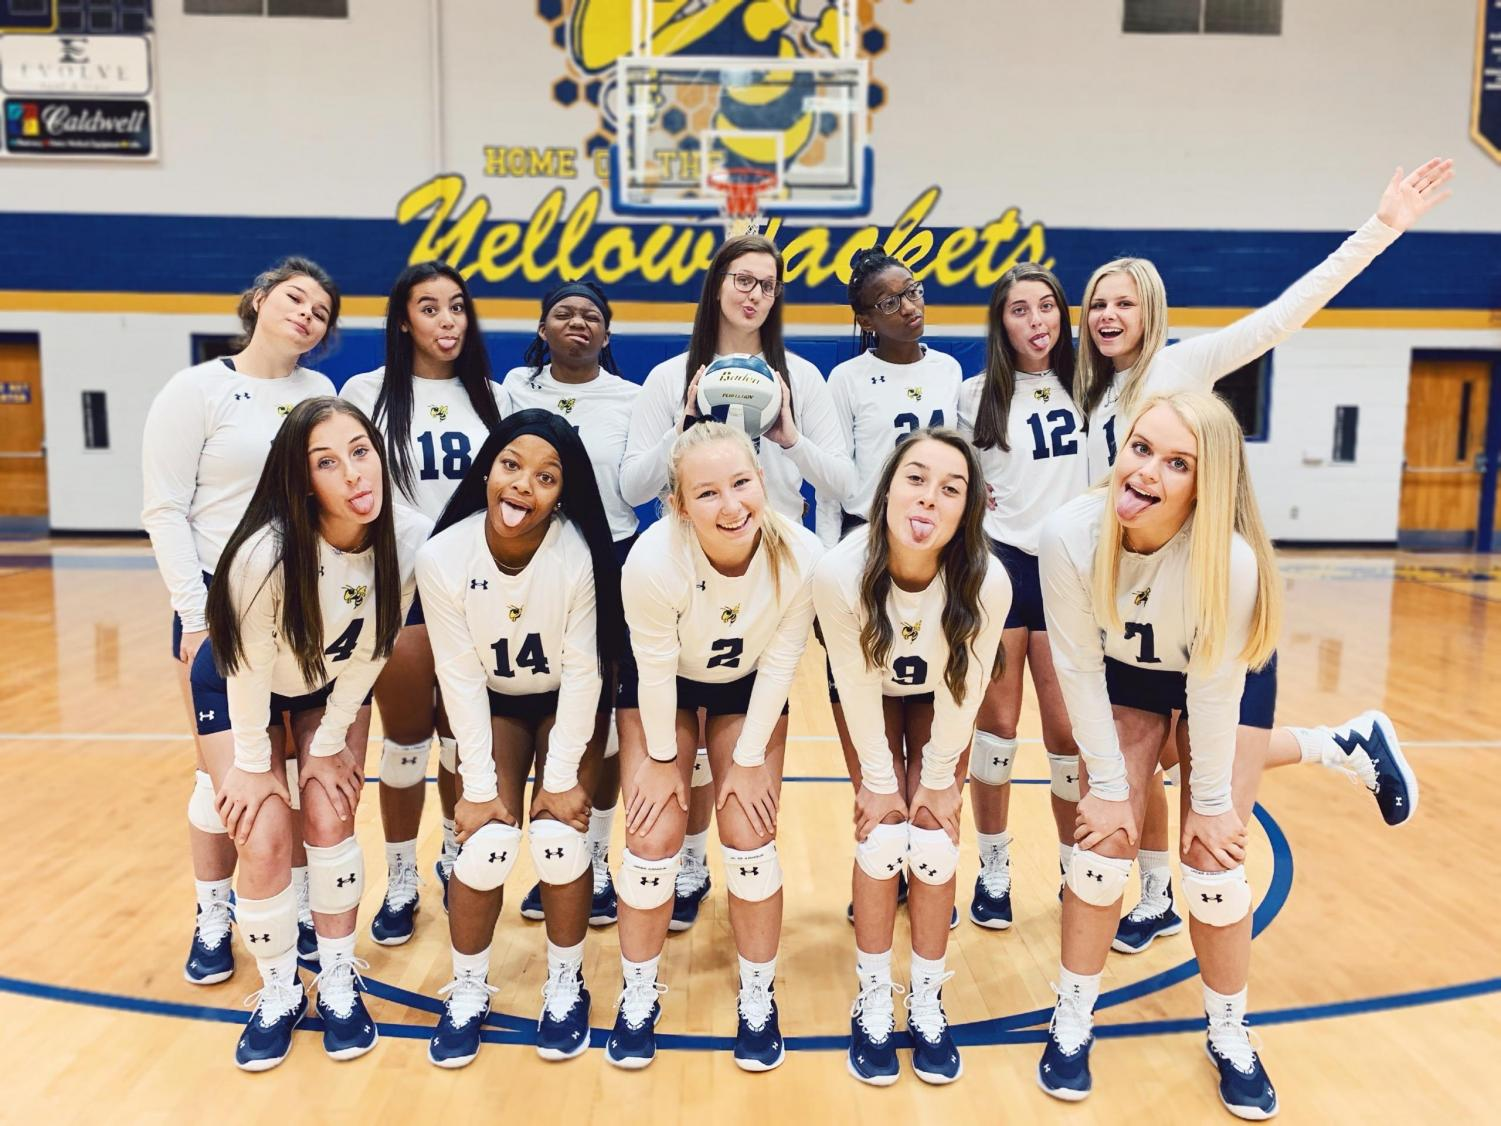 Front left to right-Emma Pagan, Londyn Mcdaniel, Claire Pribble, Mckenzie Alison, Emma McKnight,. Back row left to right-Whitley Buchanan,Stella Myers,Zahriya Baker, Kayla Lace, Darienne Carter,Emily Hale,Lauren Reed. Not Pictured Carmen Davis.